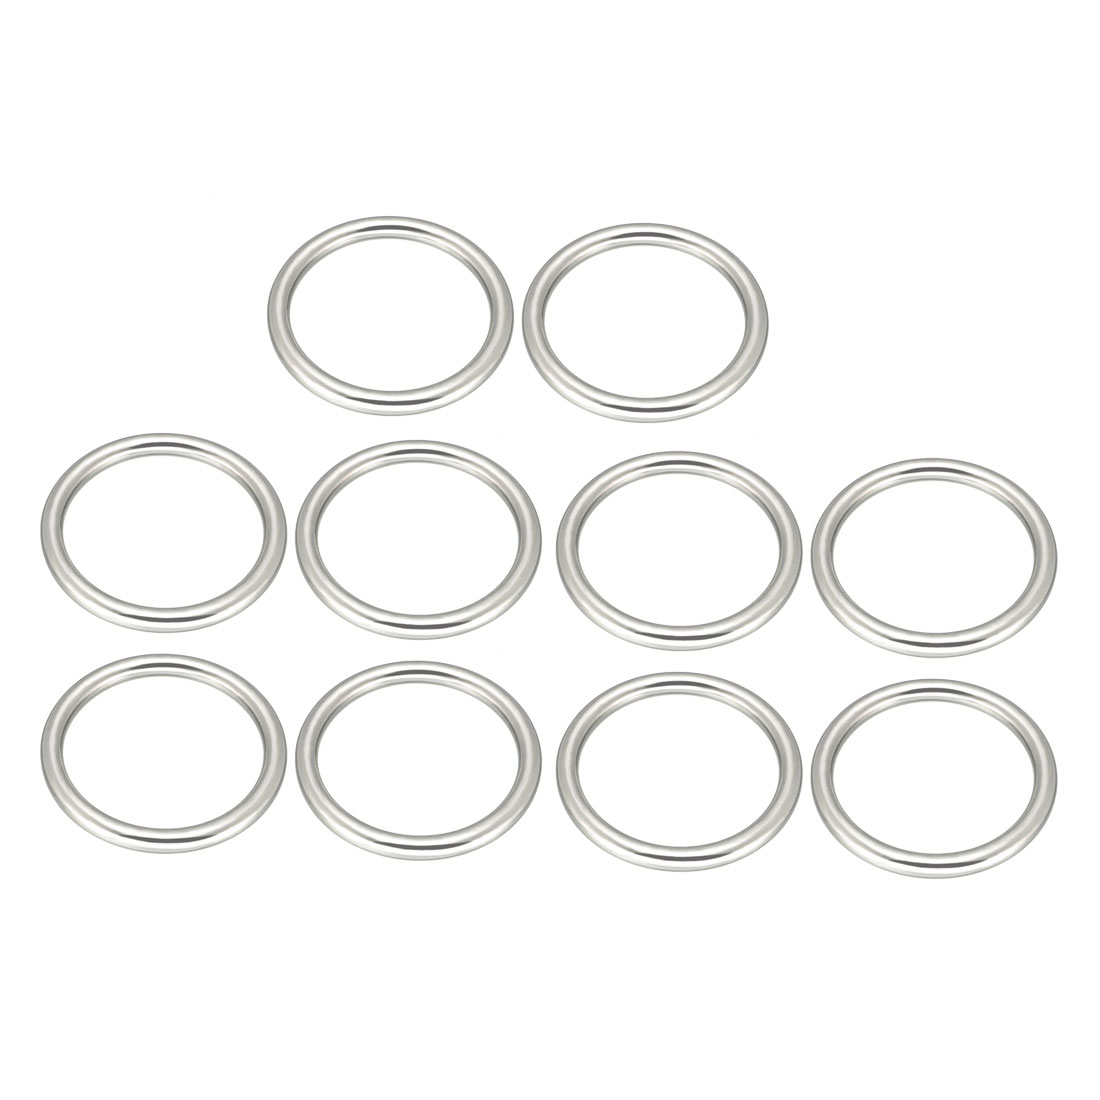 Uxcell 10 Pcs Multi-Purpose Metal O Ring Buckle Welded 50mm X 40mm X 5mm For Hardware Bags Ring Hand DIY Accessories